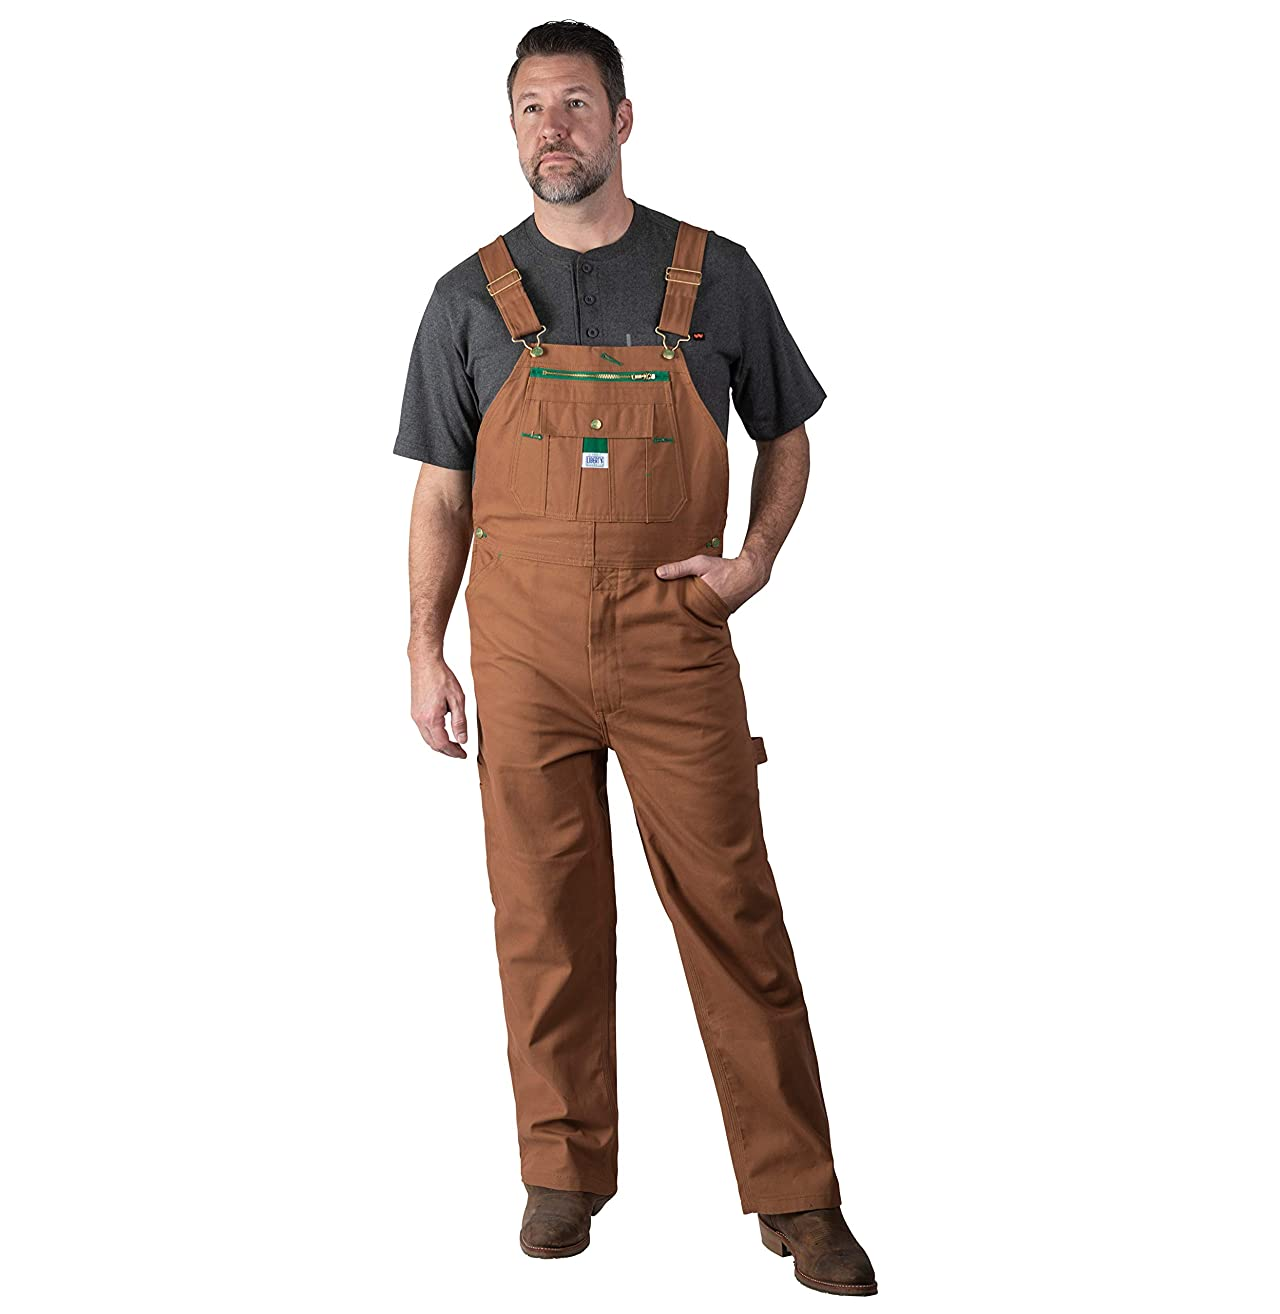 Liberty Men's Duck Bib Overall